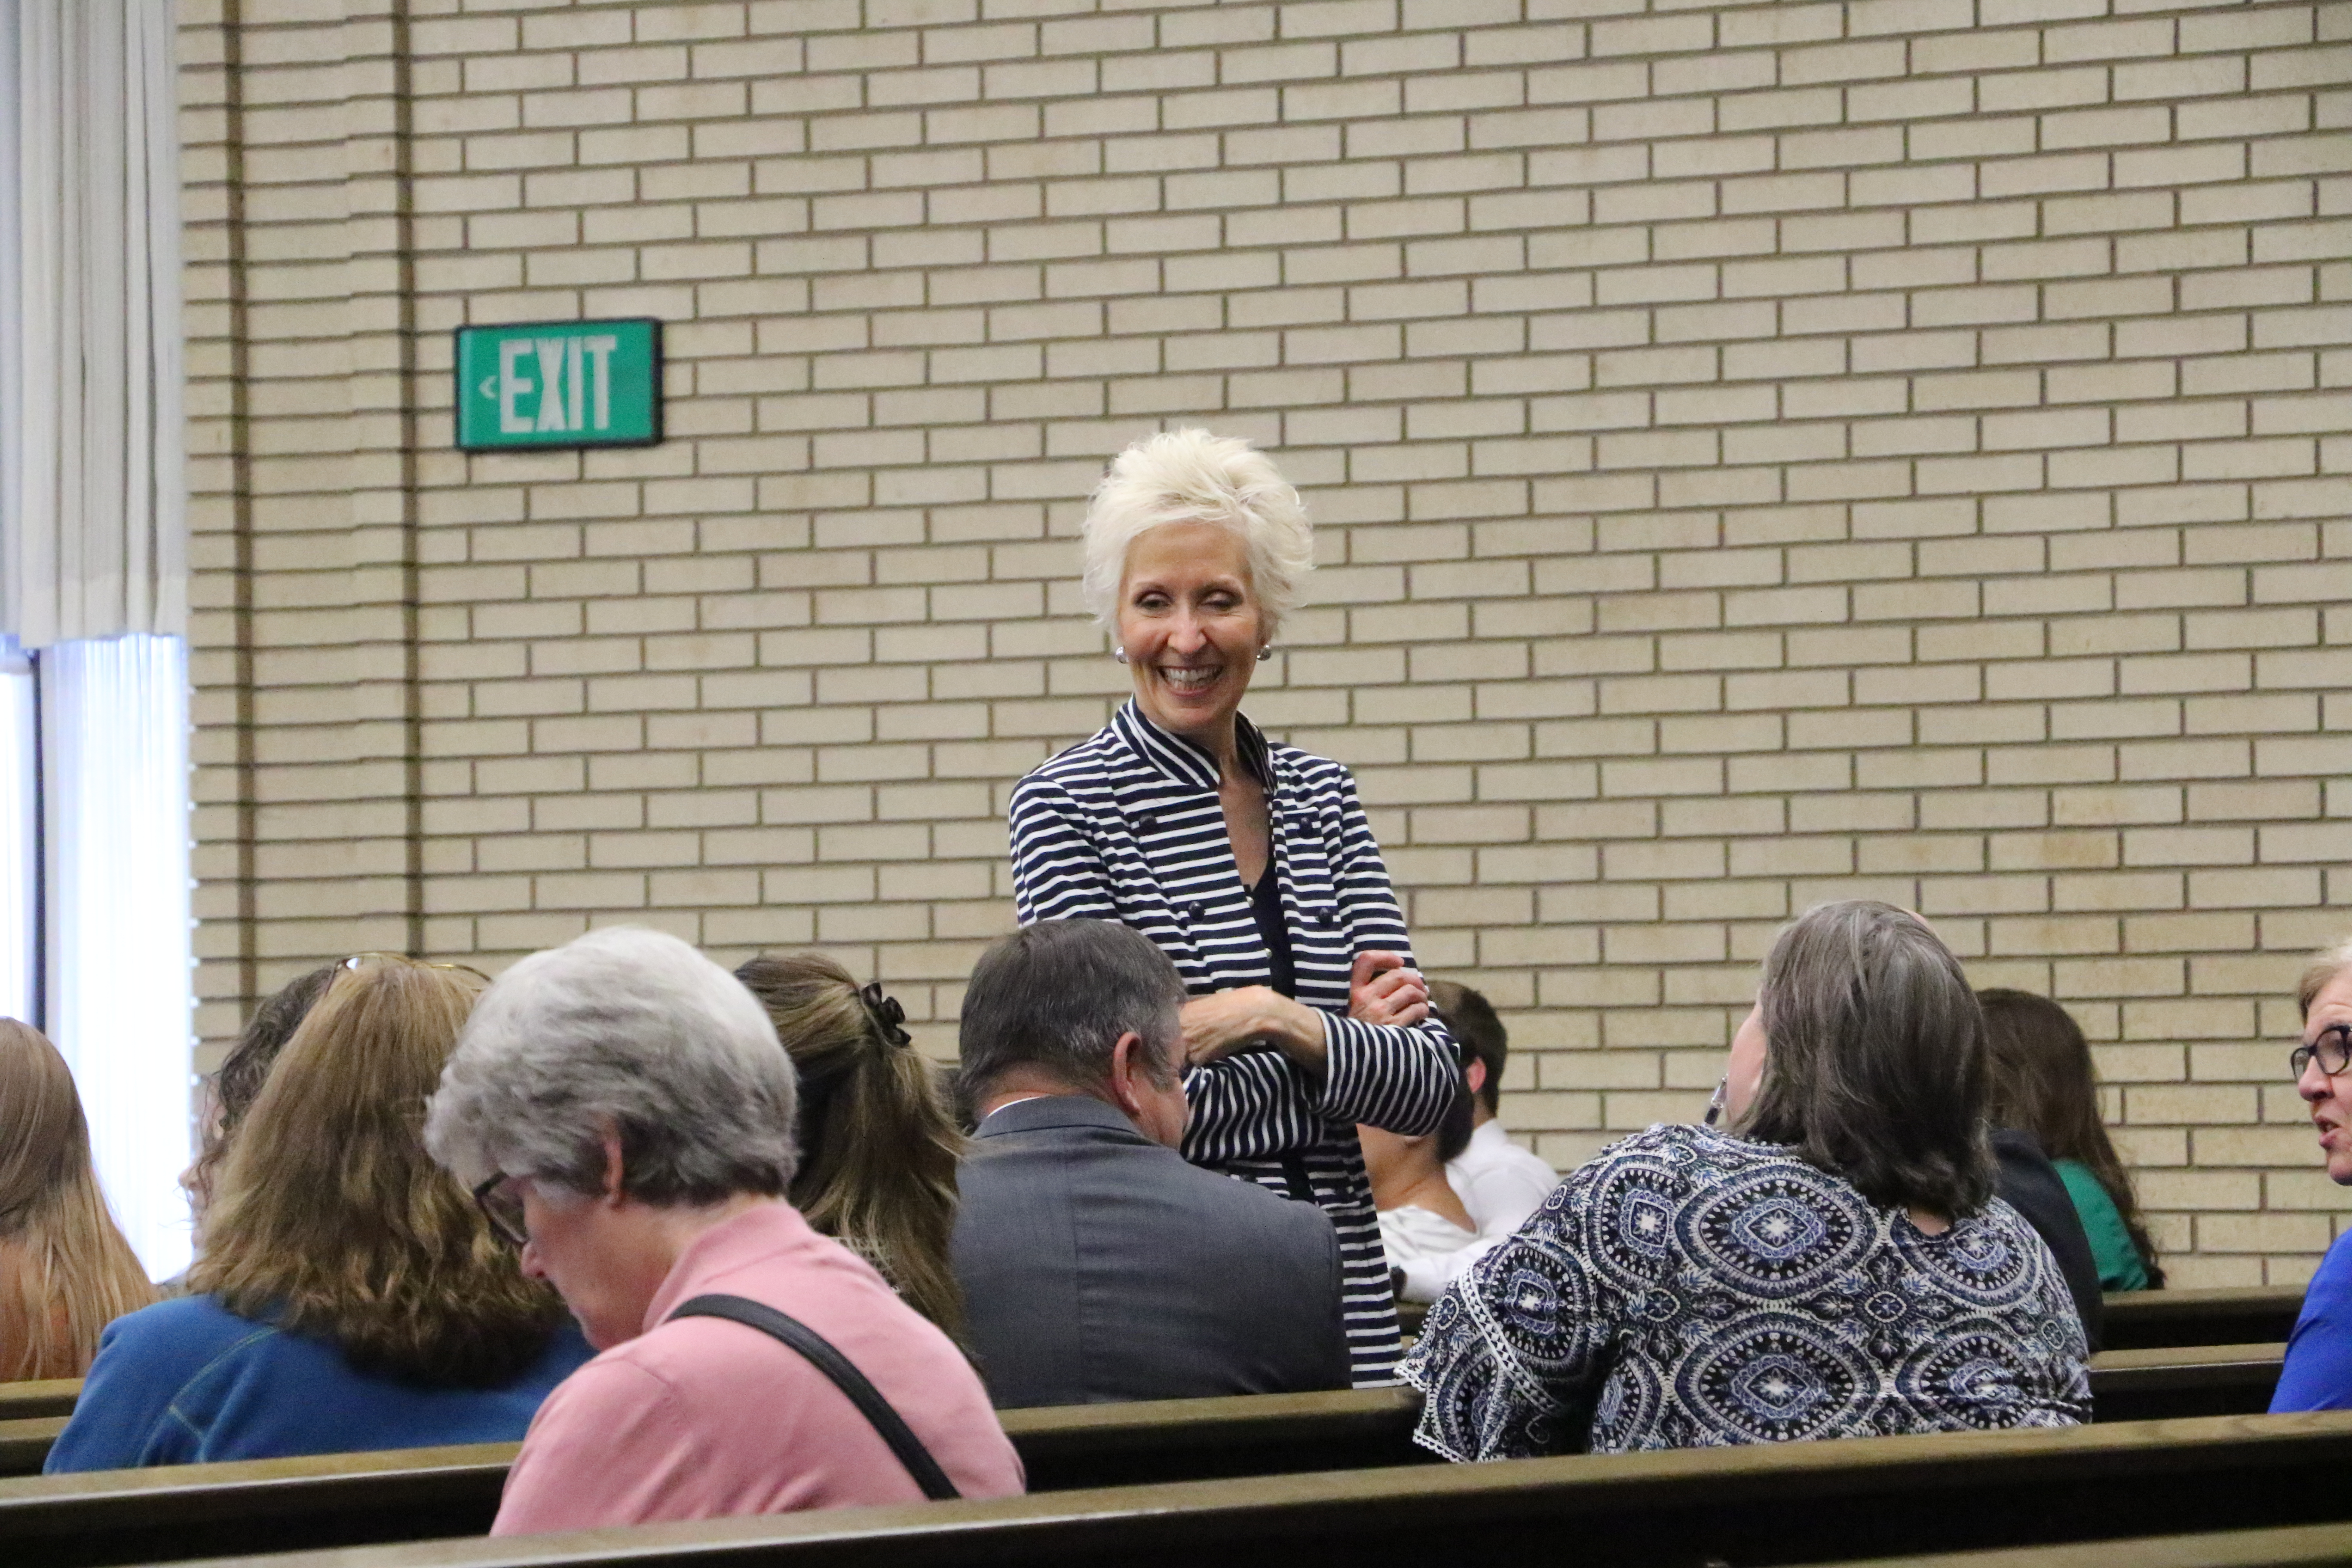 Attendees at a Sunday night devotional in Holladay, Utah, with Sister Joy D. Jones on Sept. 22, 2019 chat together prior to the devotional address.